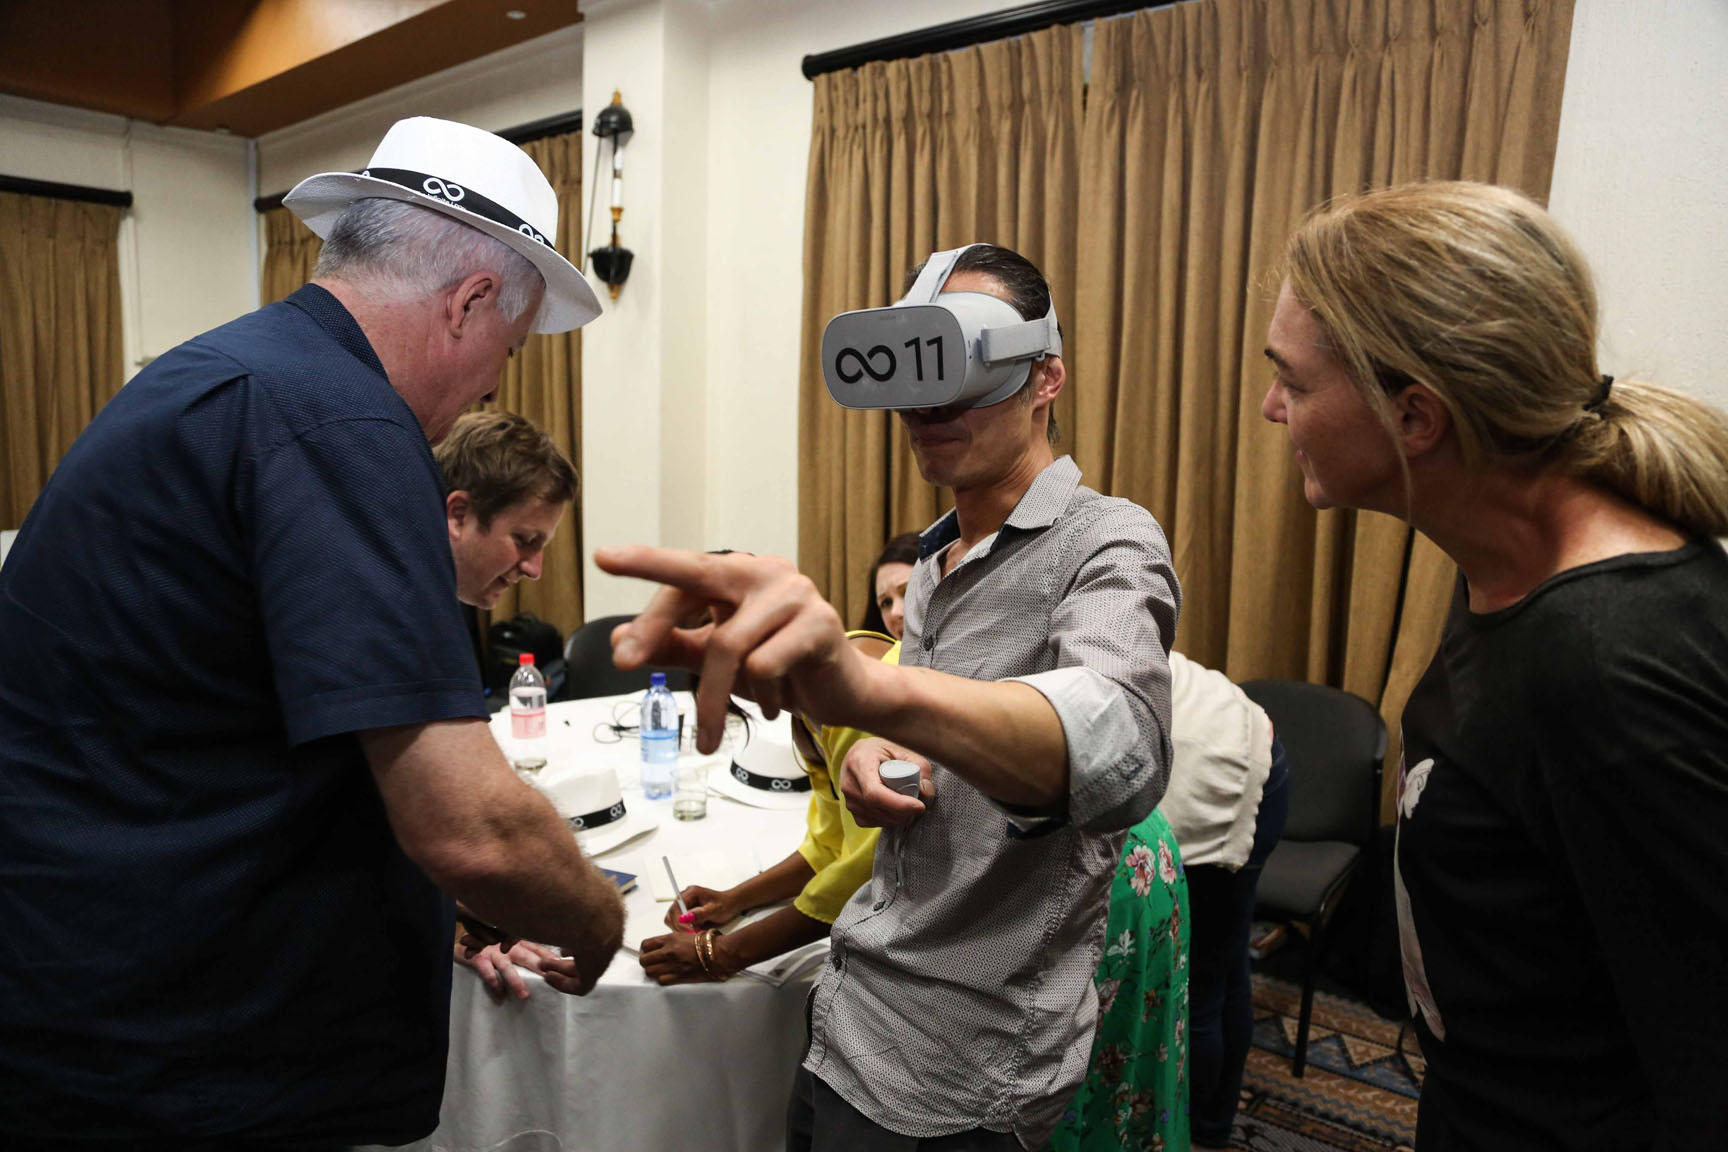 A delegate with a virtual reality headset on, while his teammates give him direction on how to proceed with the VR game.